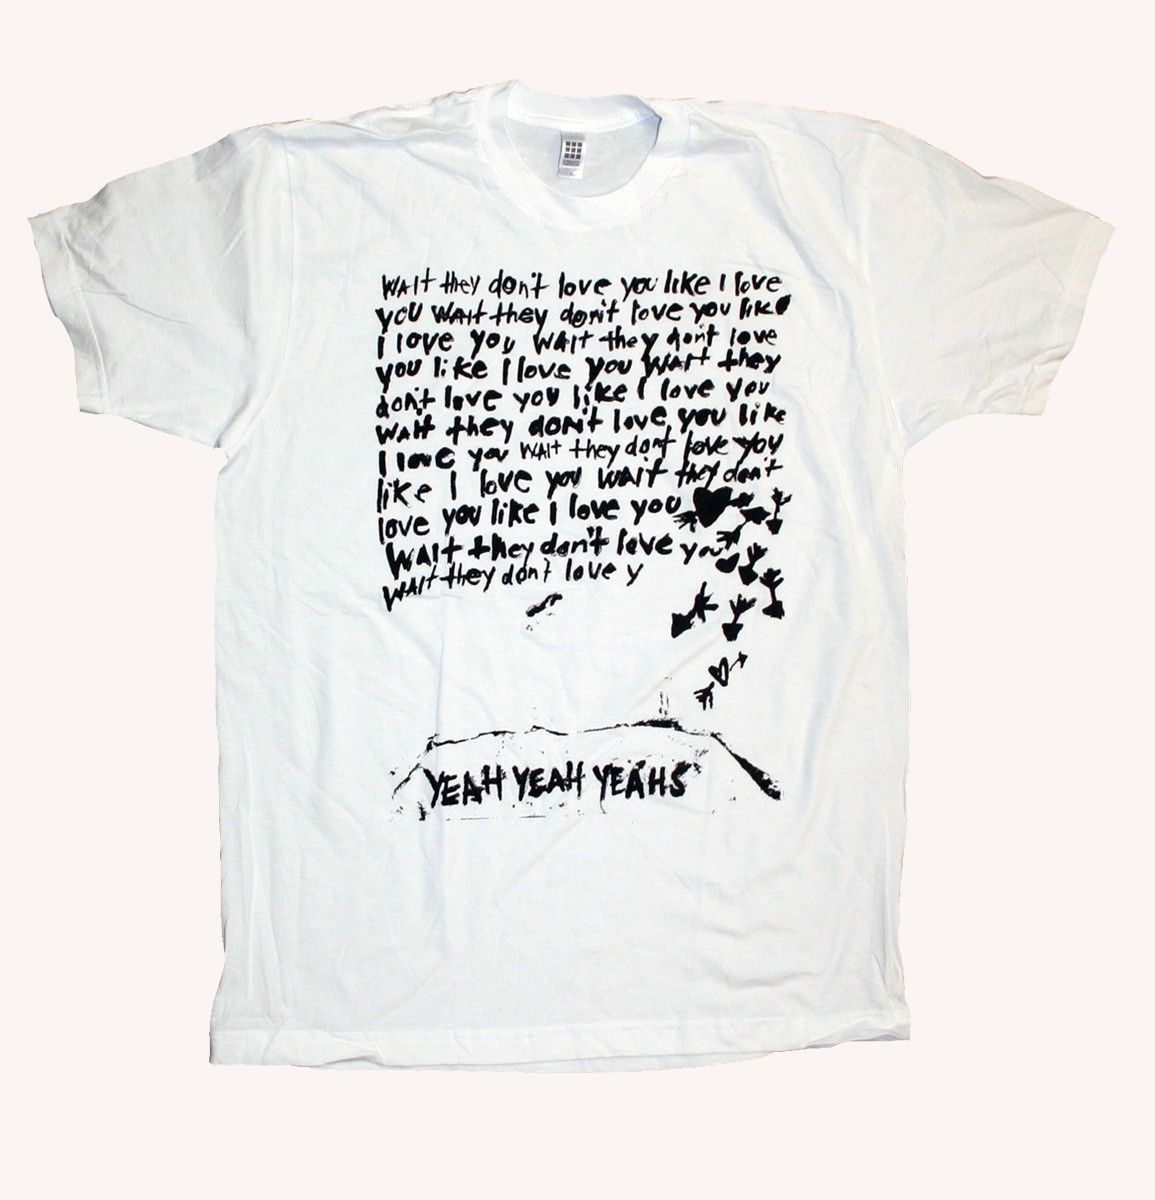 Yeah Yeah Yeahs Store | Yeah Yeah Yeahs Maps Shirt | wishlist ... Yeah Yeahs Maps Album on yeah huh, yeah well, ohh yeah, yeah clip art, yeah it was, yeah you know, yeah boy, ludacris yeah, yeah album cover, karen o yeah, yeah band, aw yeah, yeah buddy, yeah i know, uh yeah, yeah thank you,